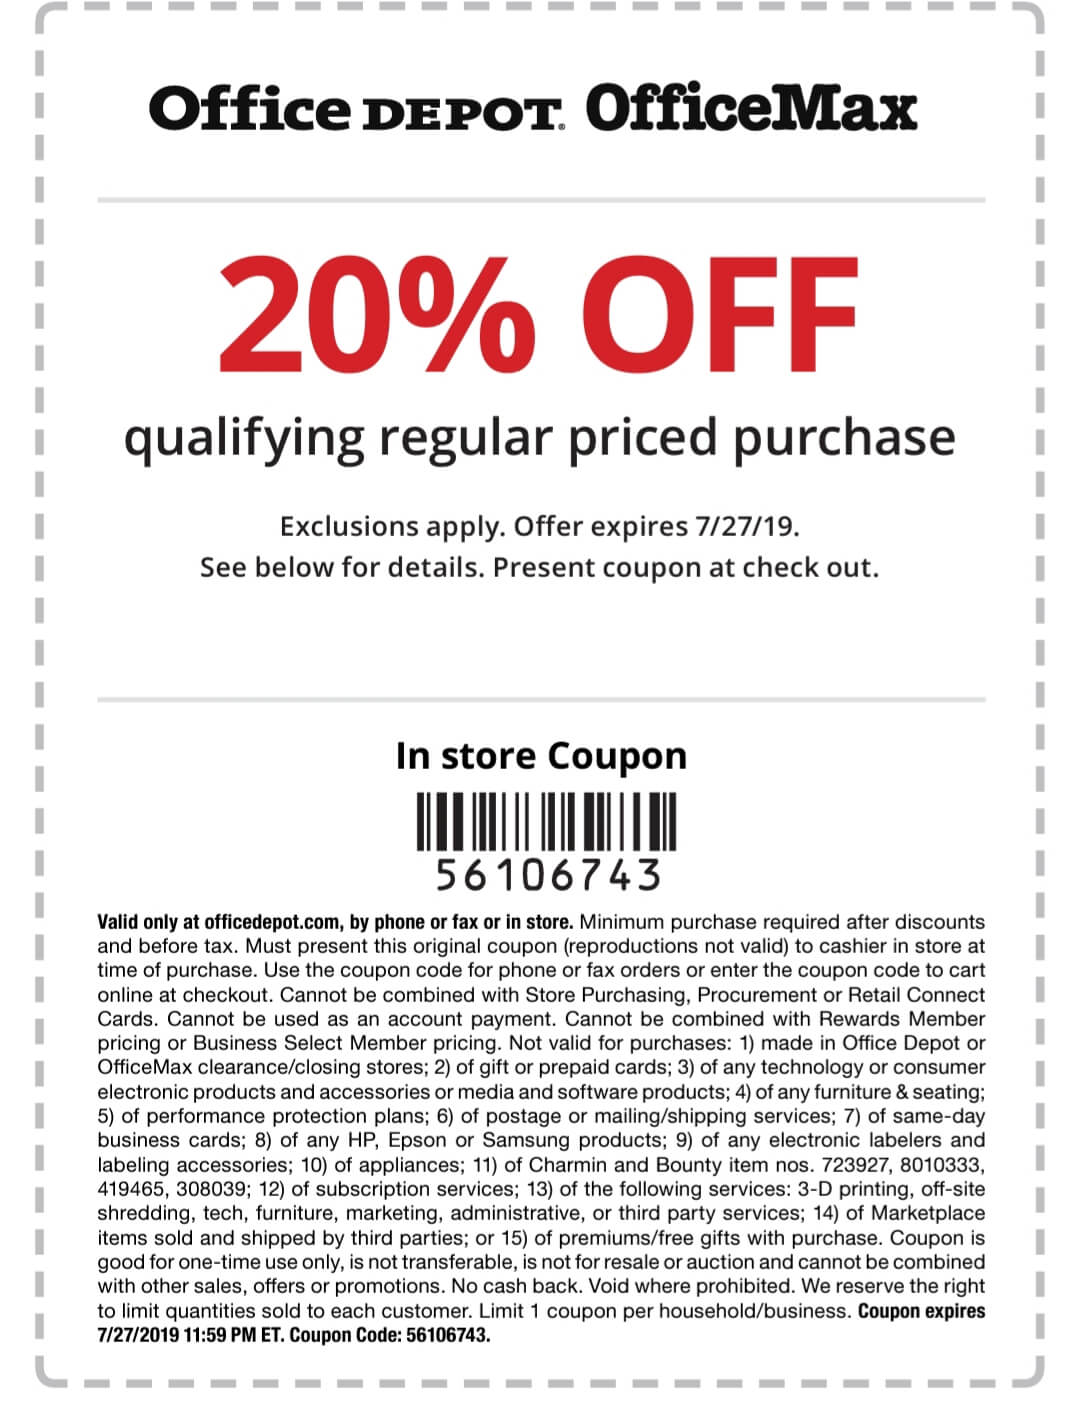 Office Depot Coupon December 2019 20% off at Office Depot & OfficeMax, or online via promo code 56106743